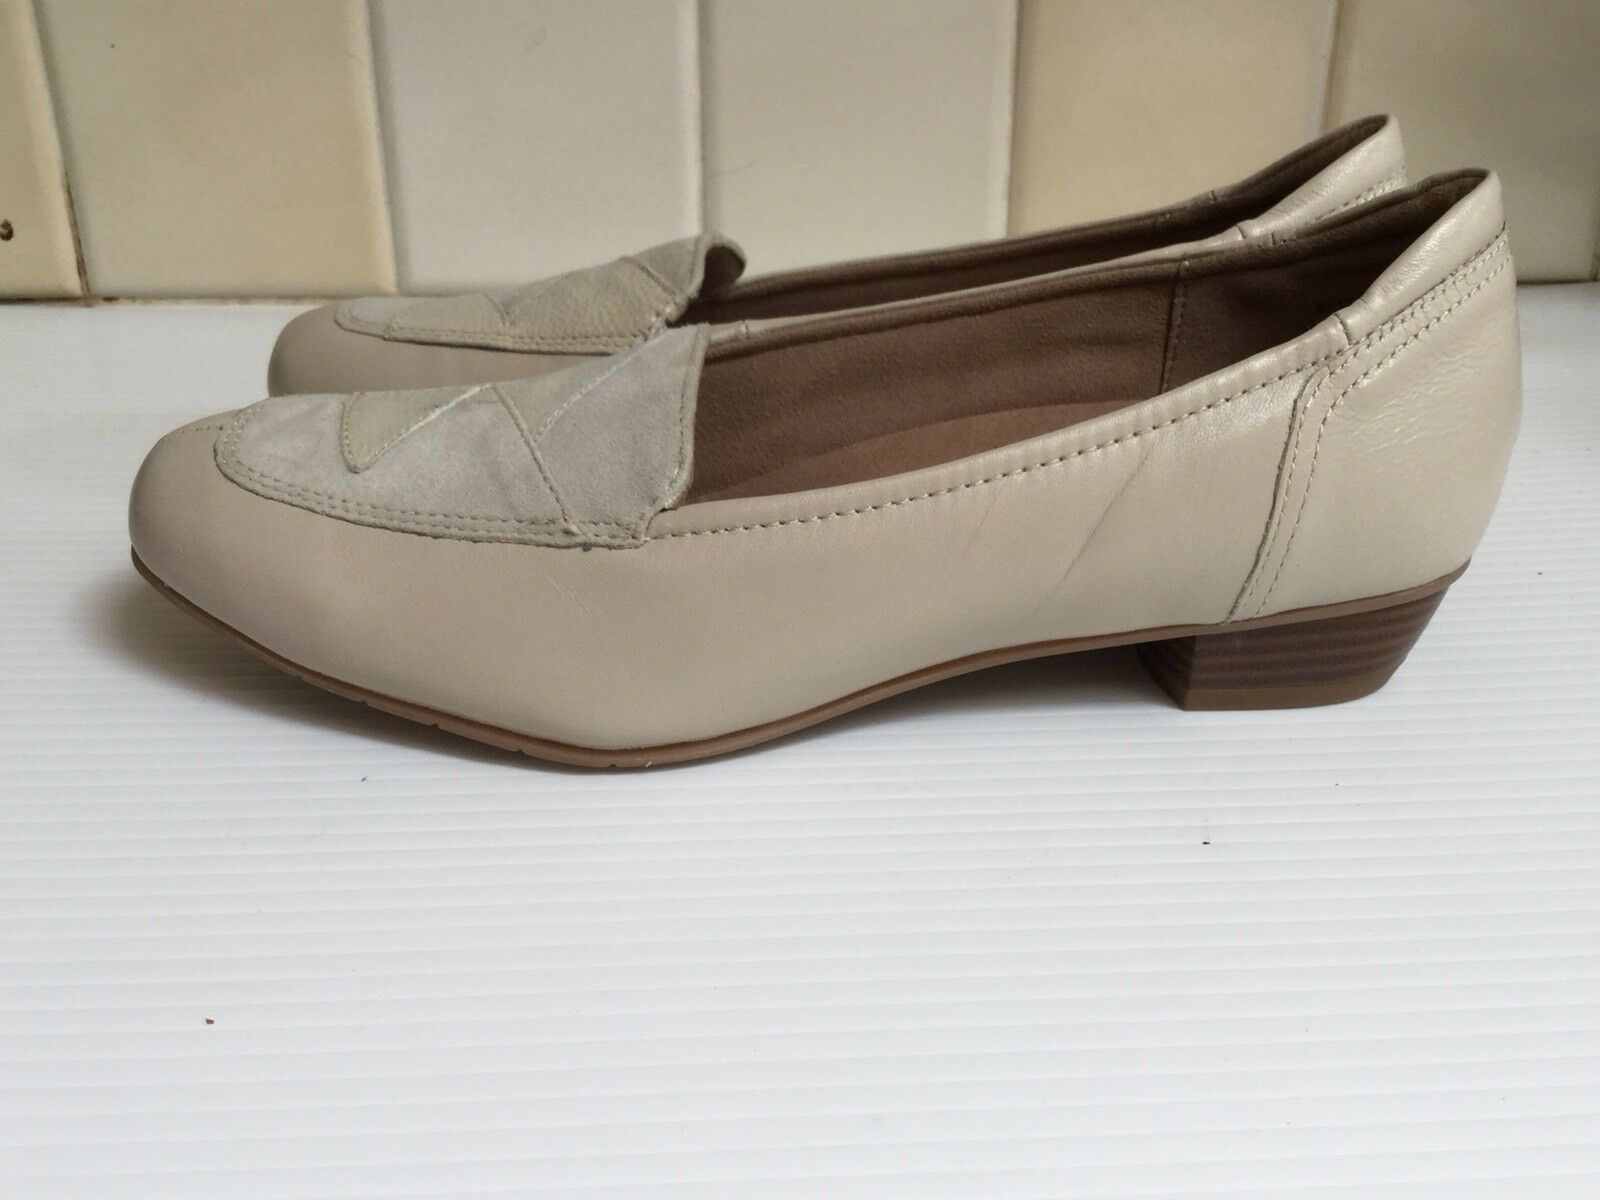 HOTTER, ' MILLY' CREAM/ IVORY, LOW HEEL. UK SIZE 6 1/2, EUR 40